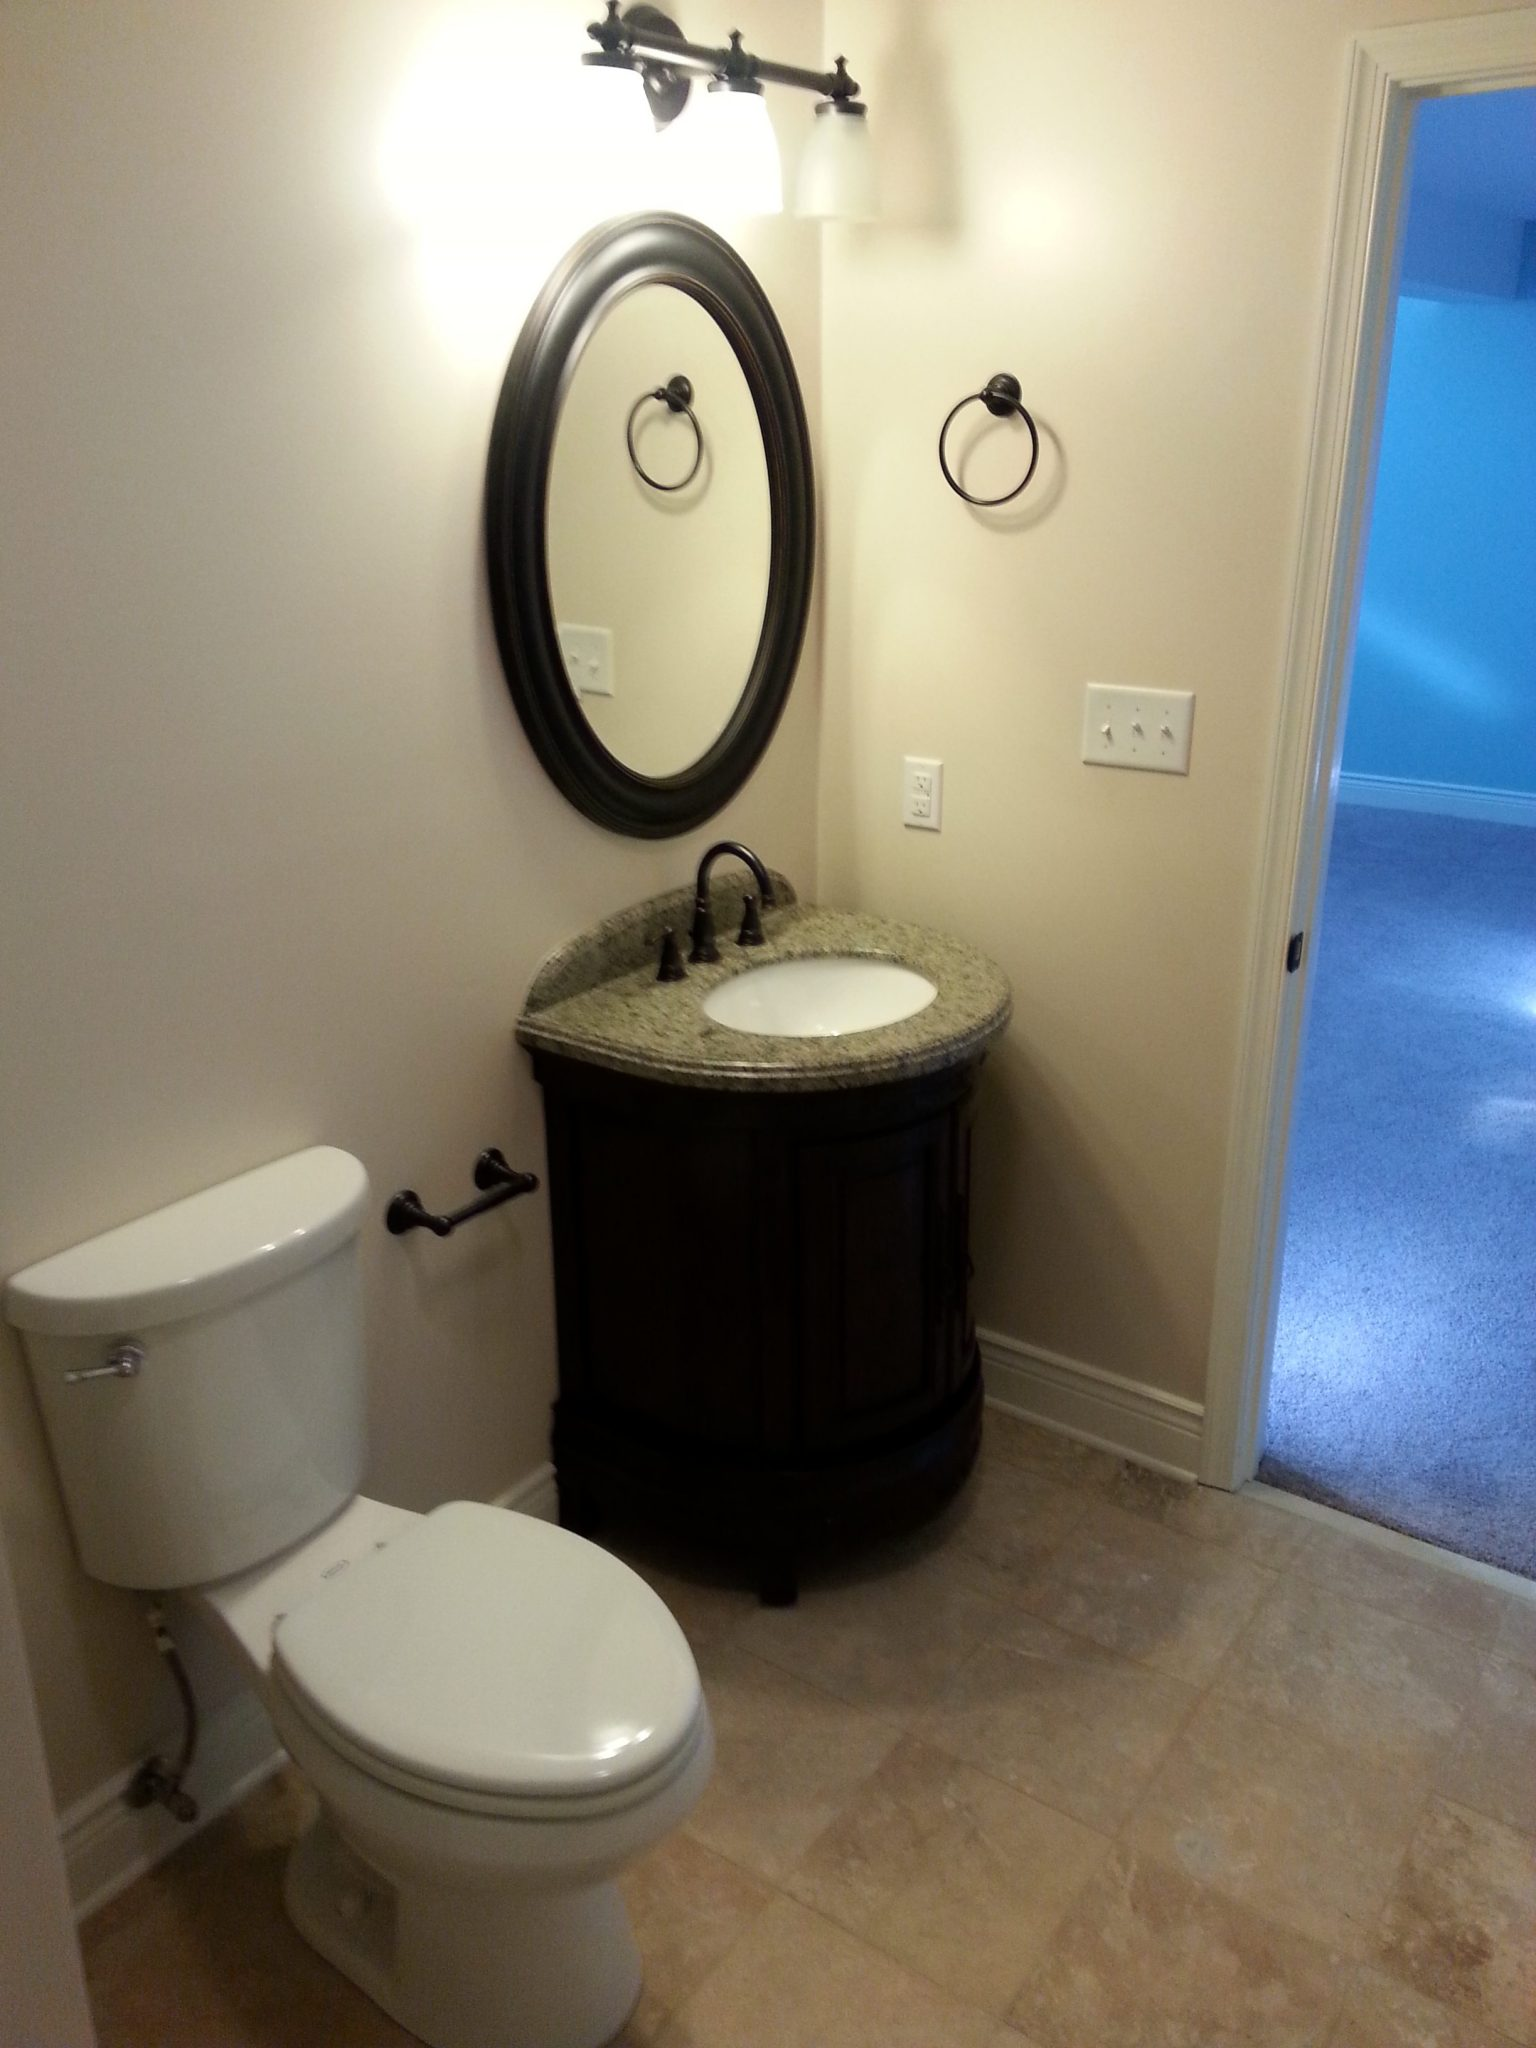 Finished Basement, Bedrooms With Egress Windows, And Upgrades bathroom vanity